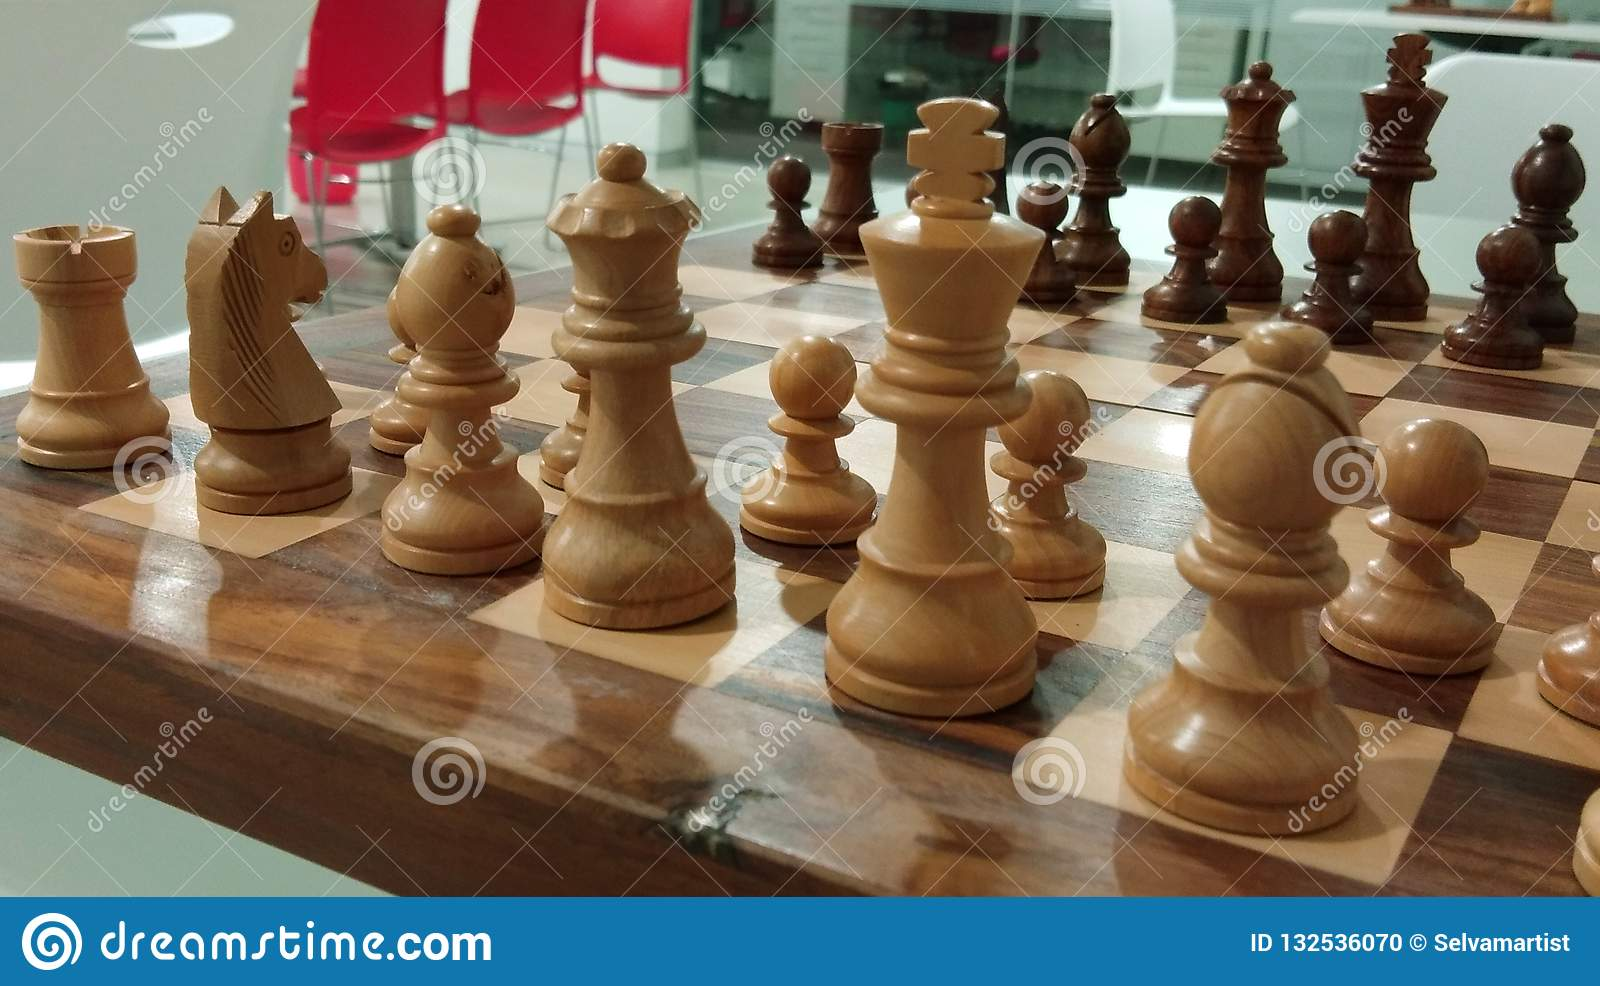 The traditional chess piece on chess board ready for battle.